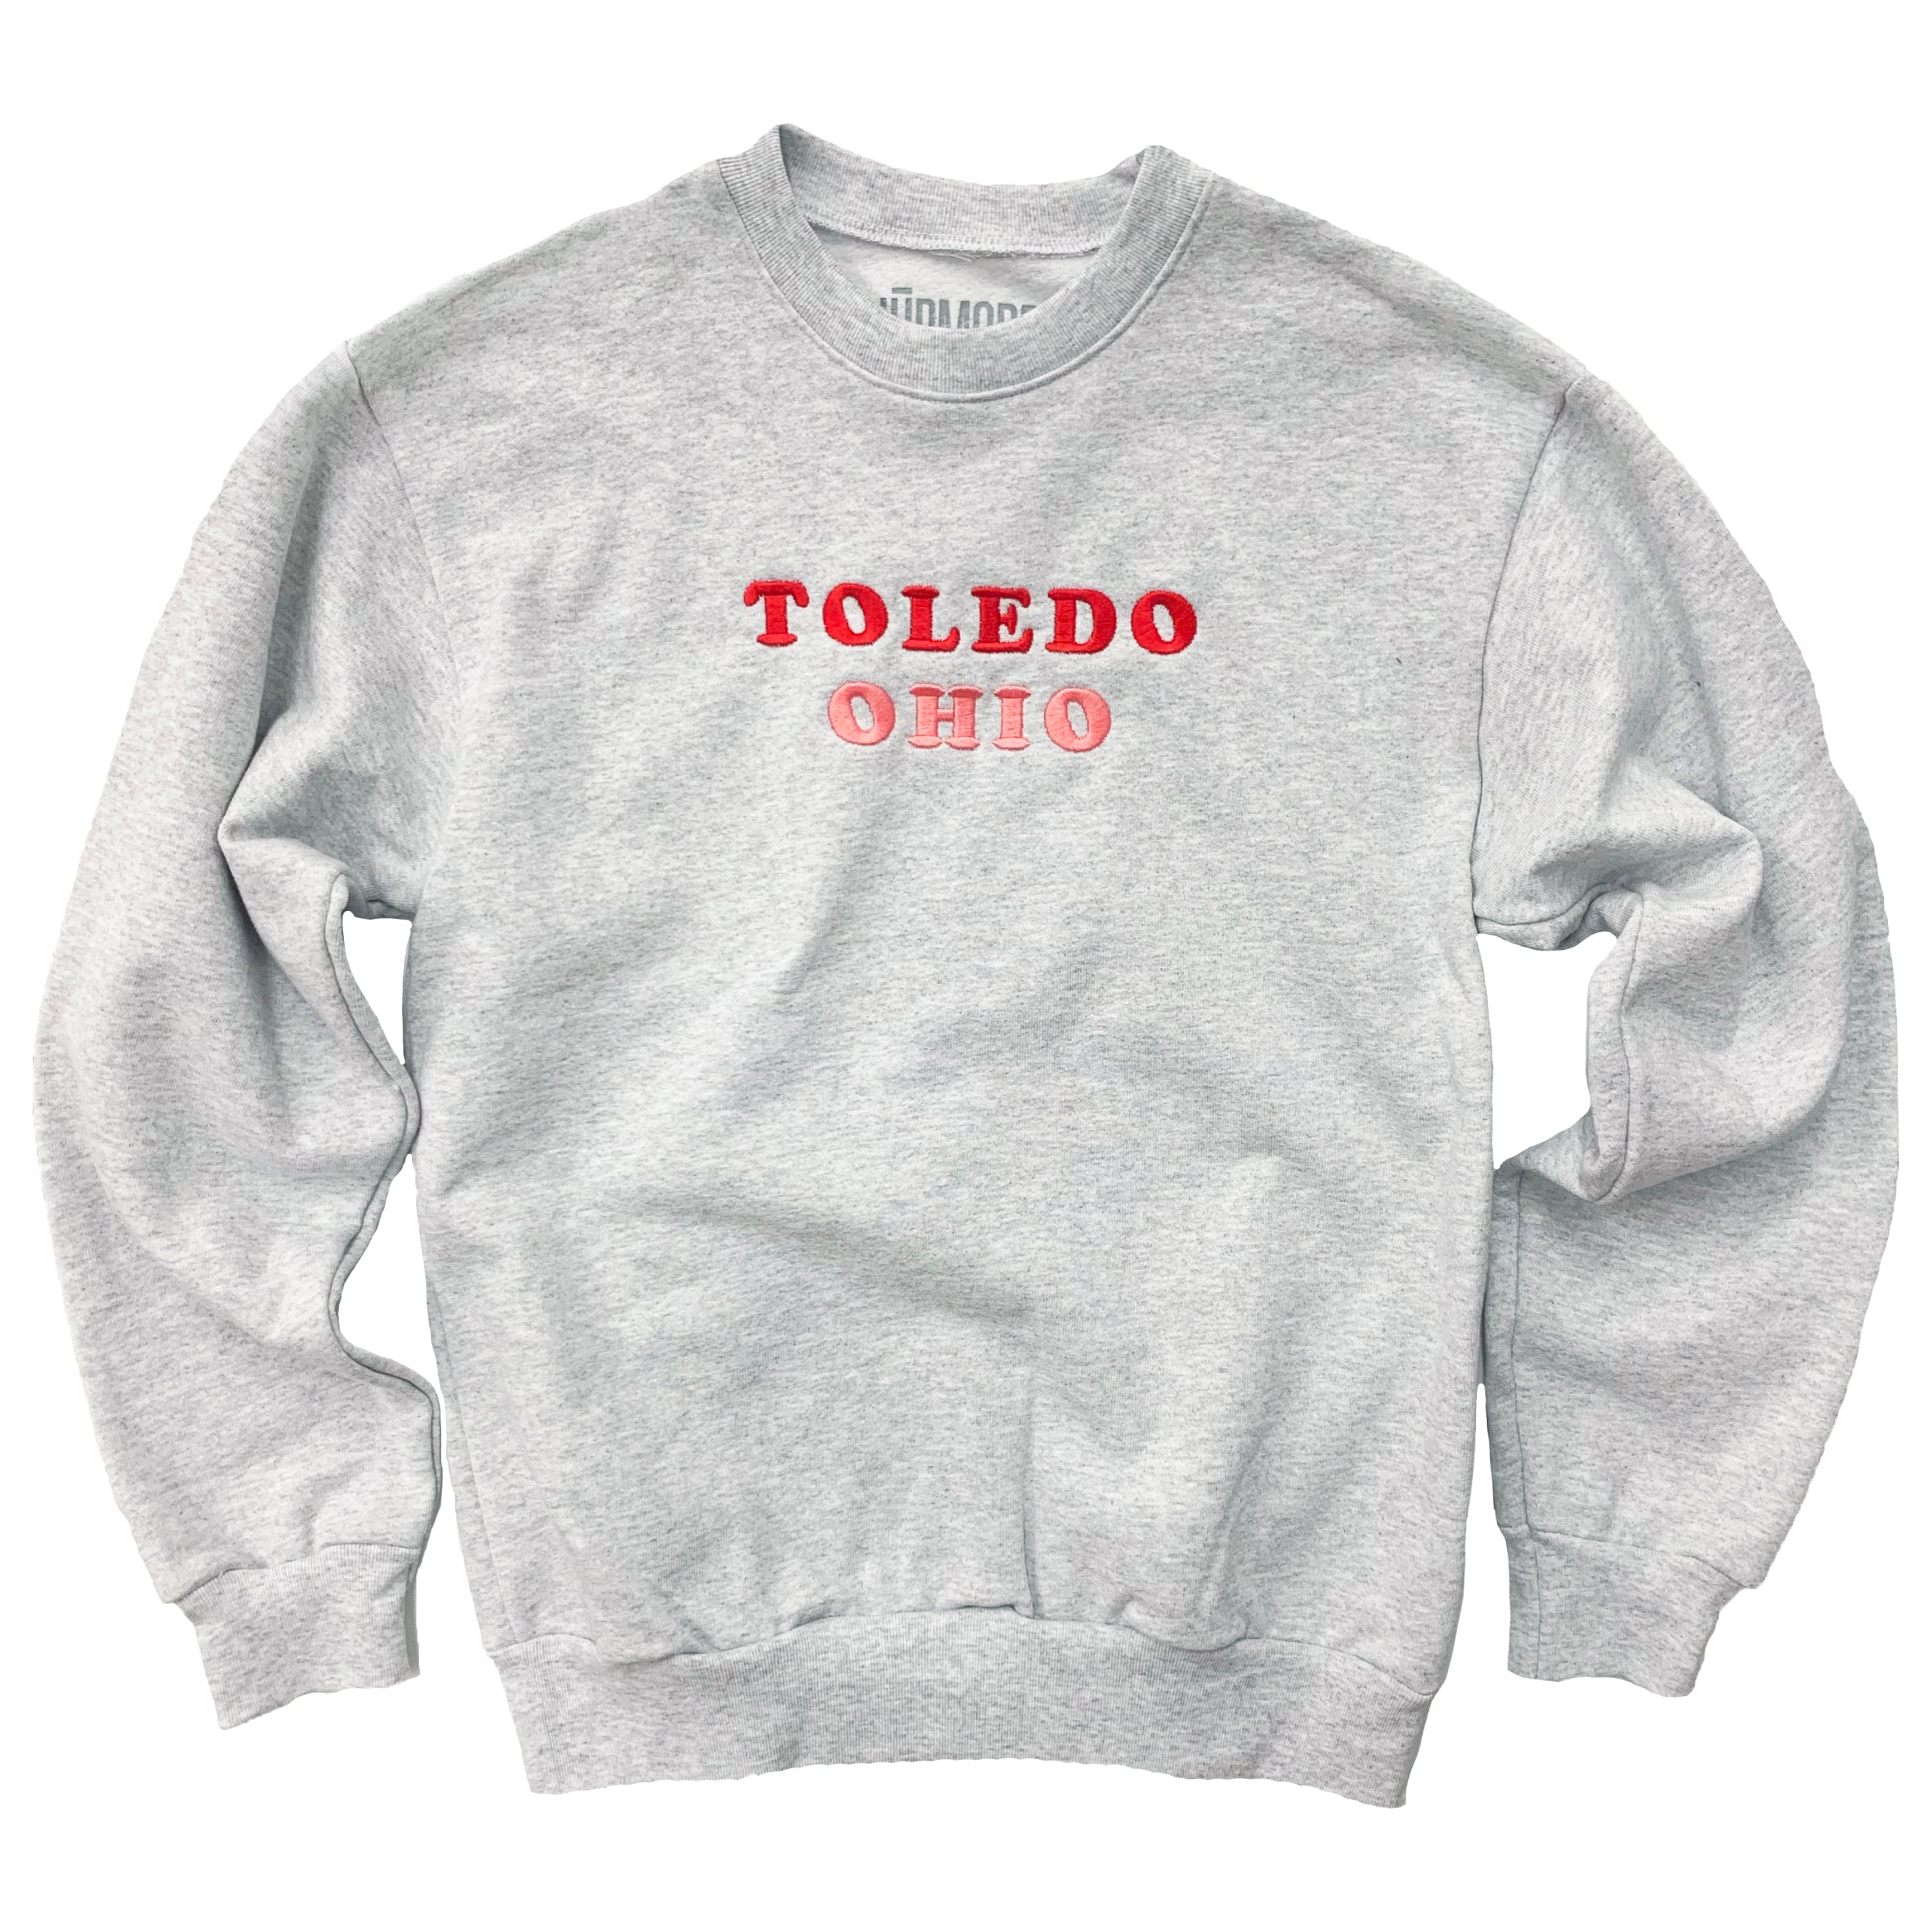 Toledo Ohio Embroidered Heavy Sweatshirt